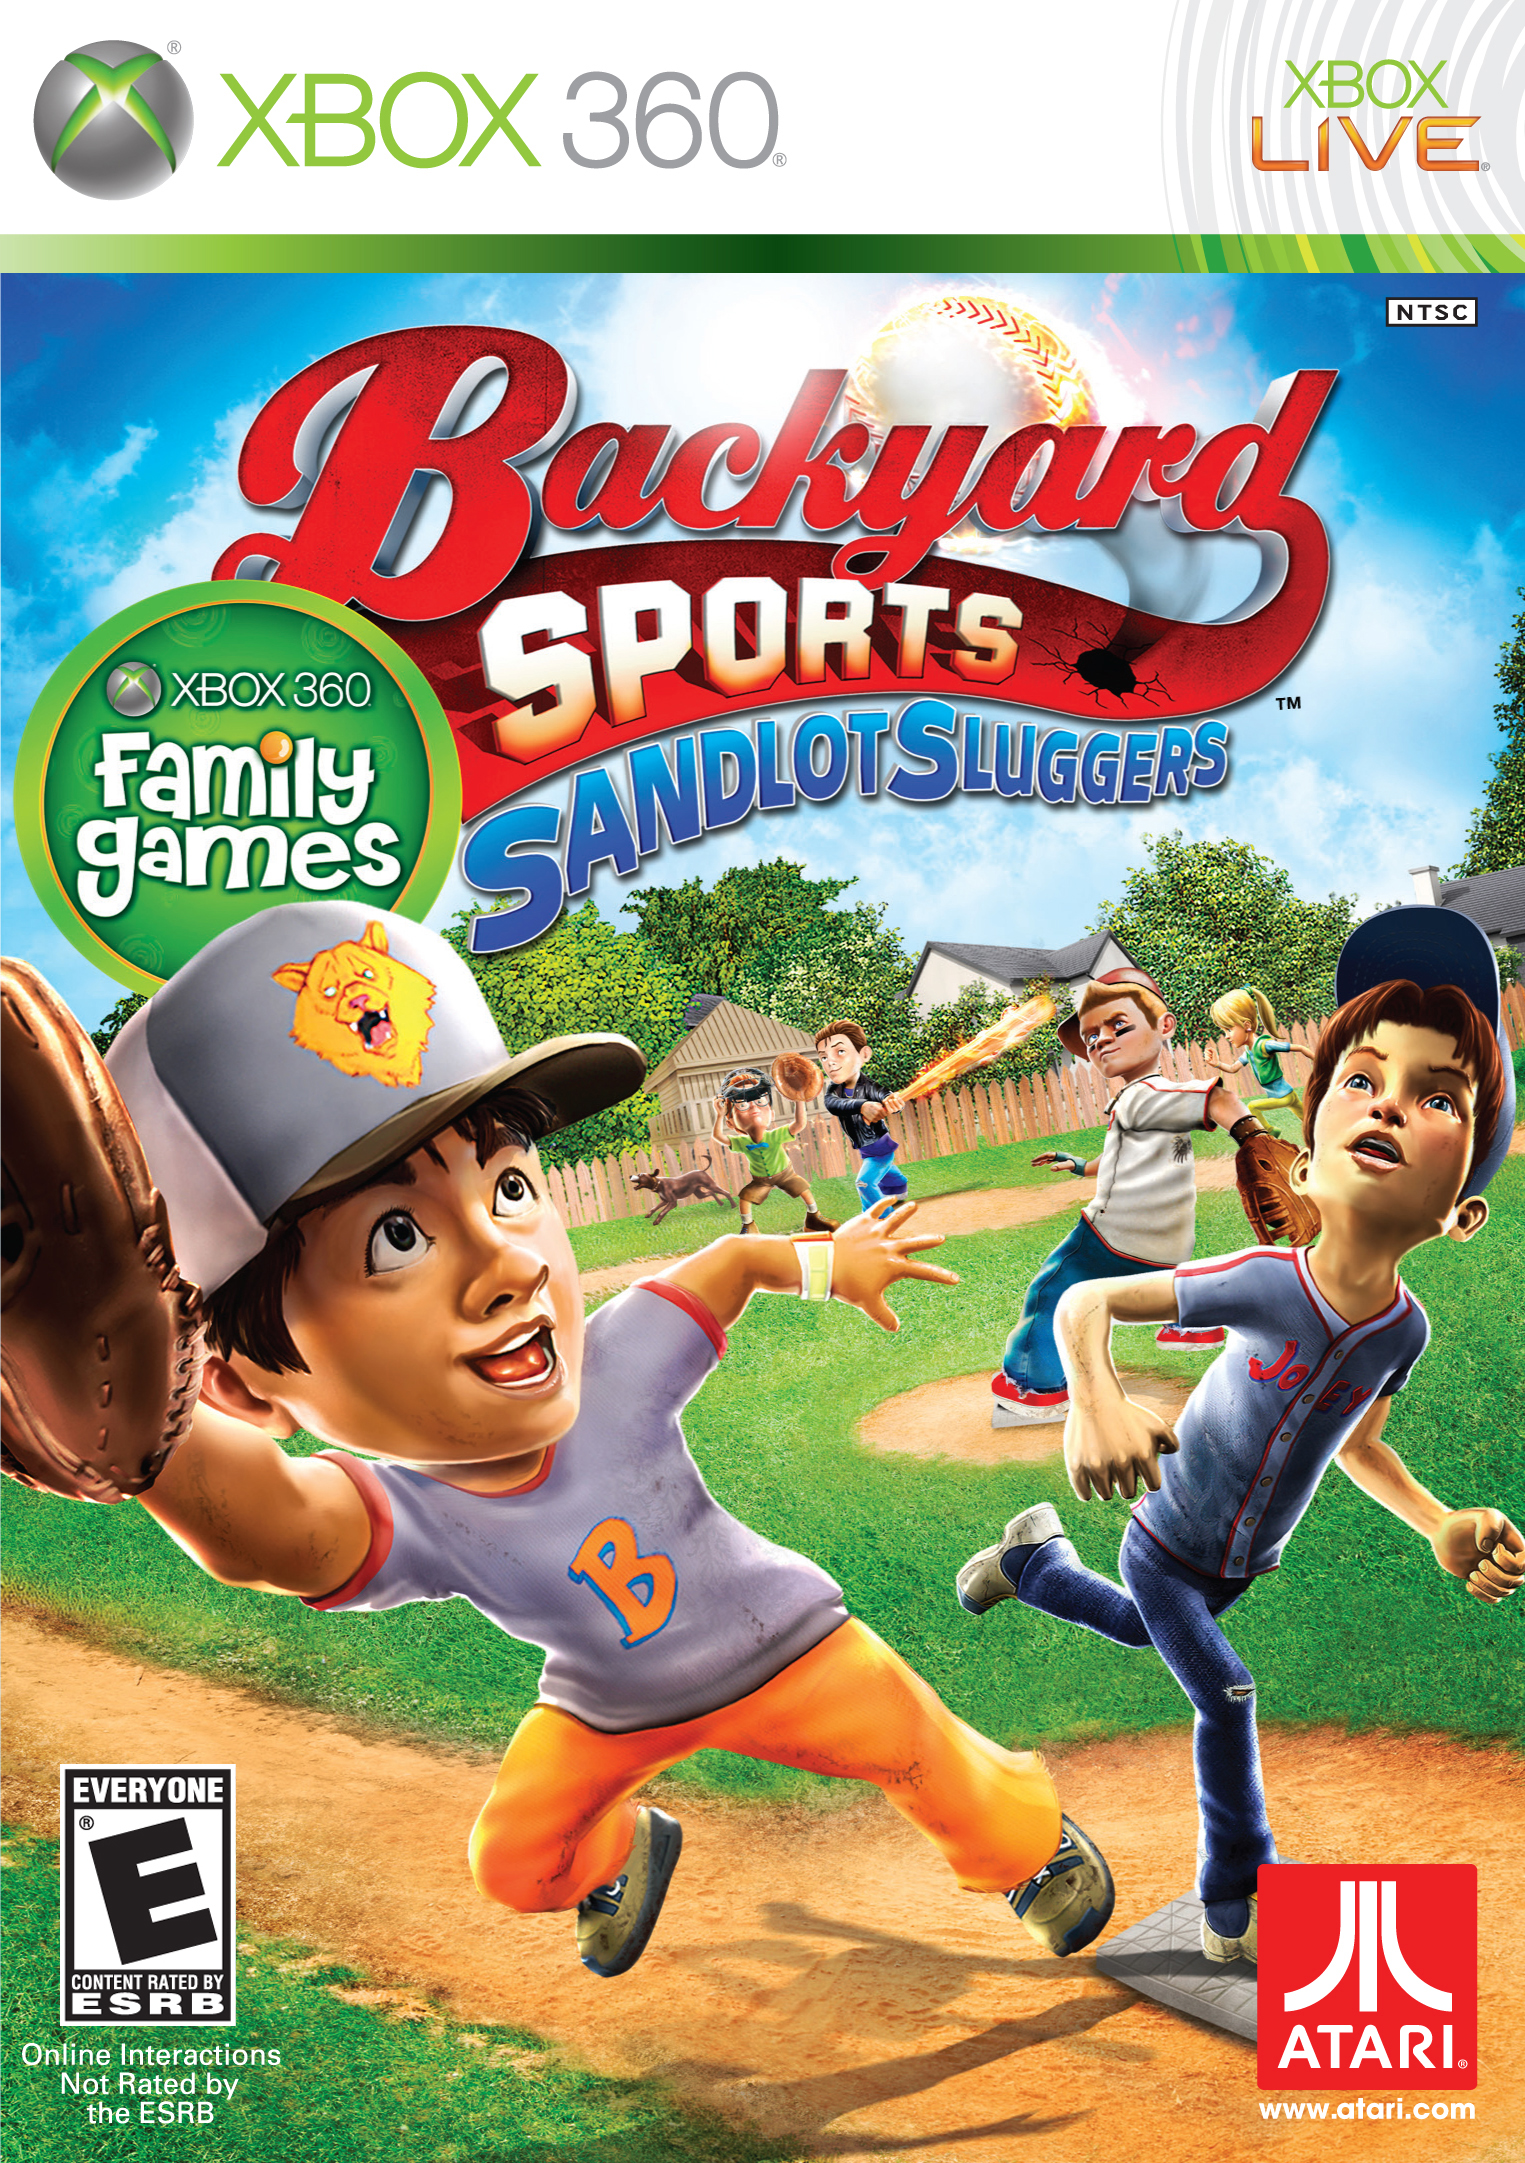 Sandlot Sluggers its out of the park fun! Game Giveaway